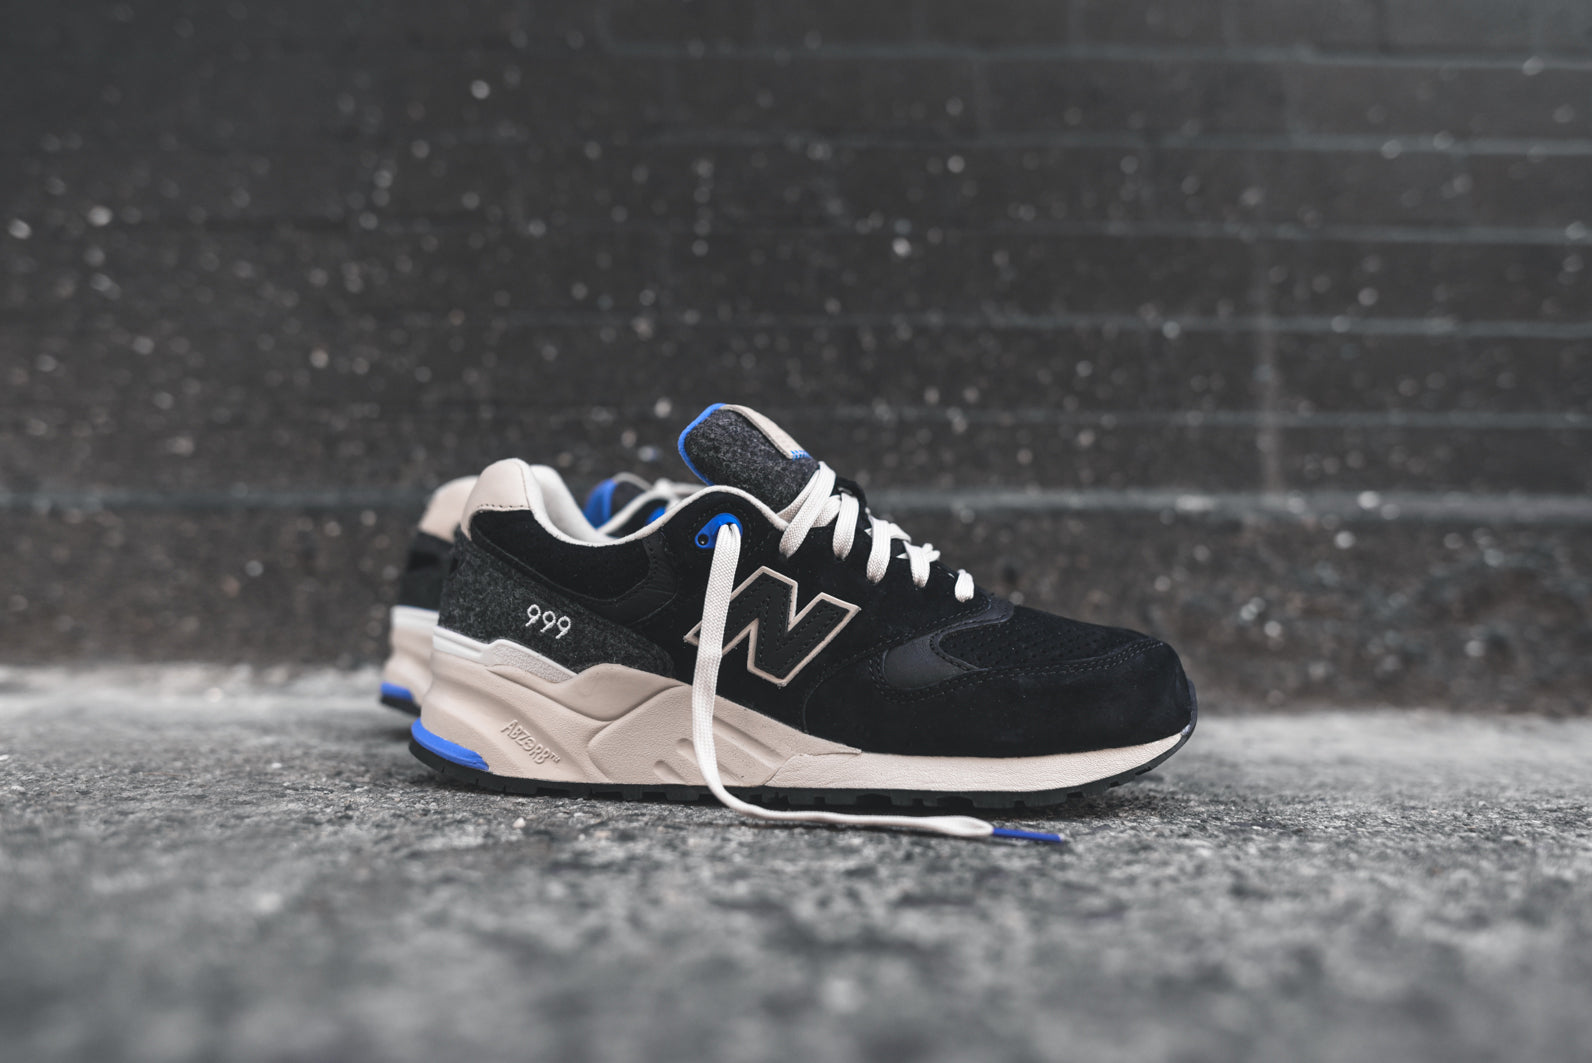 meilleur authentique 1cfbb 898fe New Balance ML999 Elite Wool Pack & HRL710 – Kith